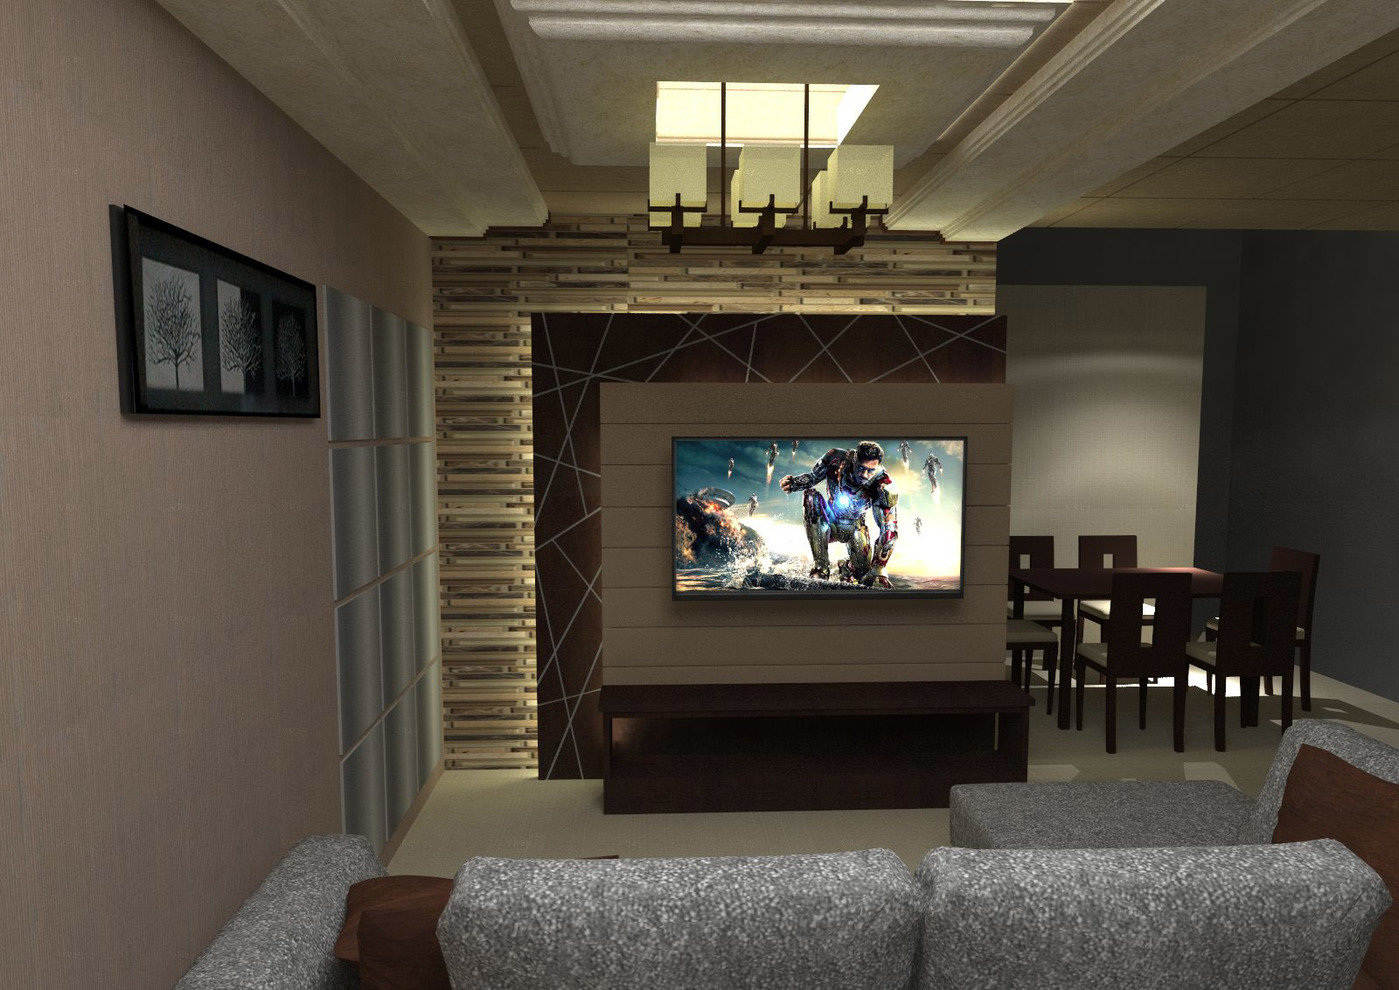 Camella Homes By Anne Therese Maglunog Villafuerte At Coroflot Com